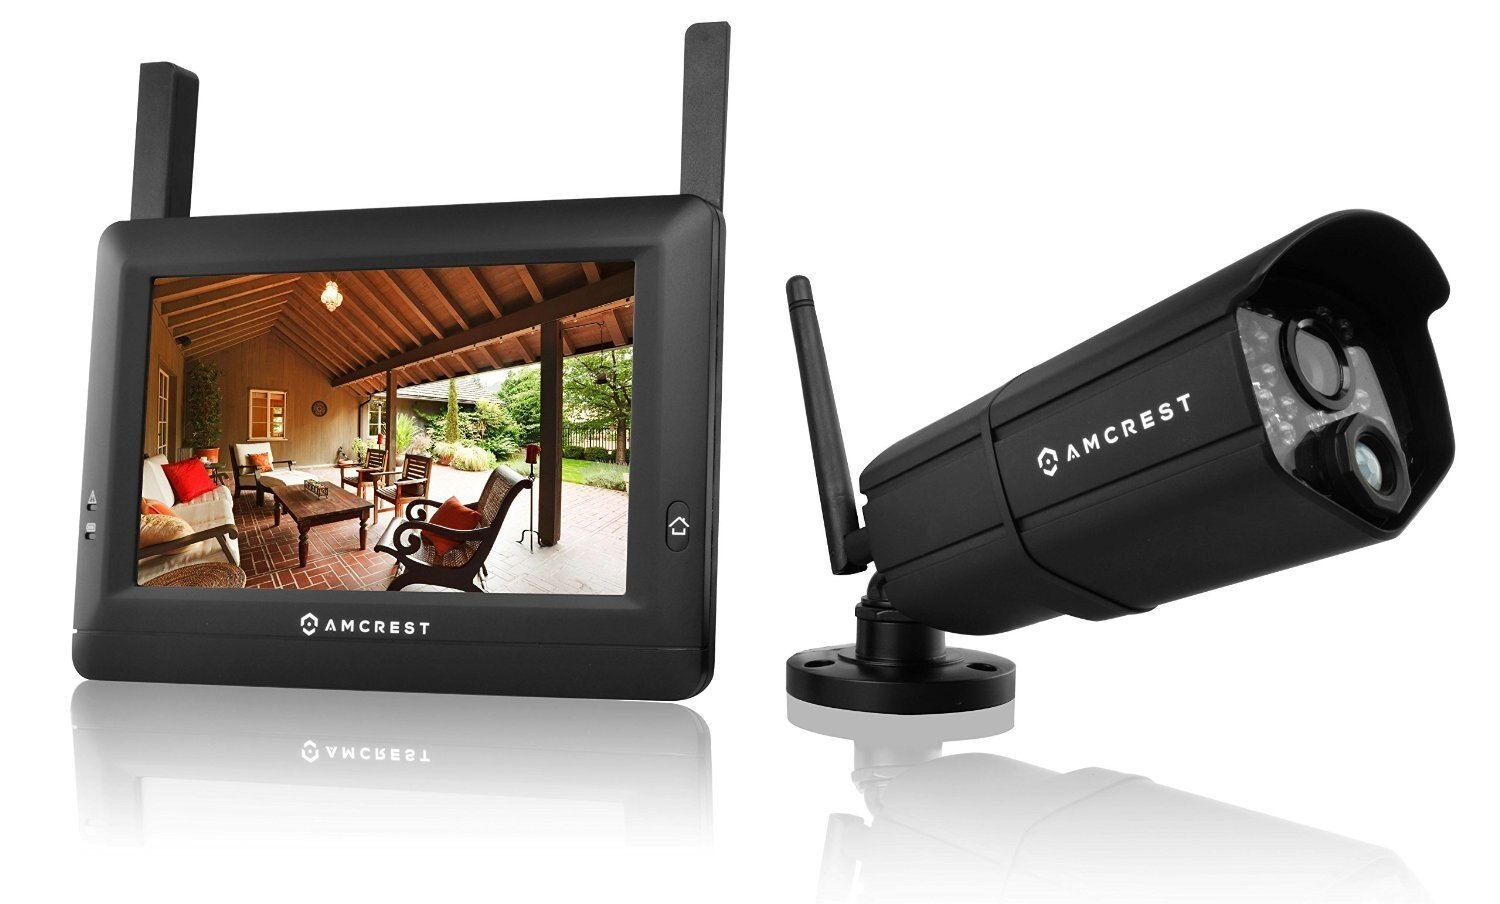 Amcrest WLD895US 720P 4CH 7-Inch Wireless Video Surveillance System, Bullet IP66 Camera (Black)